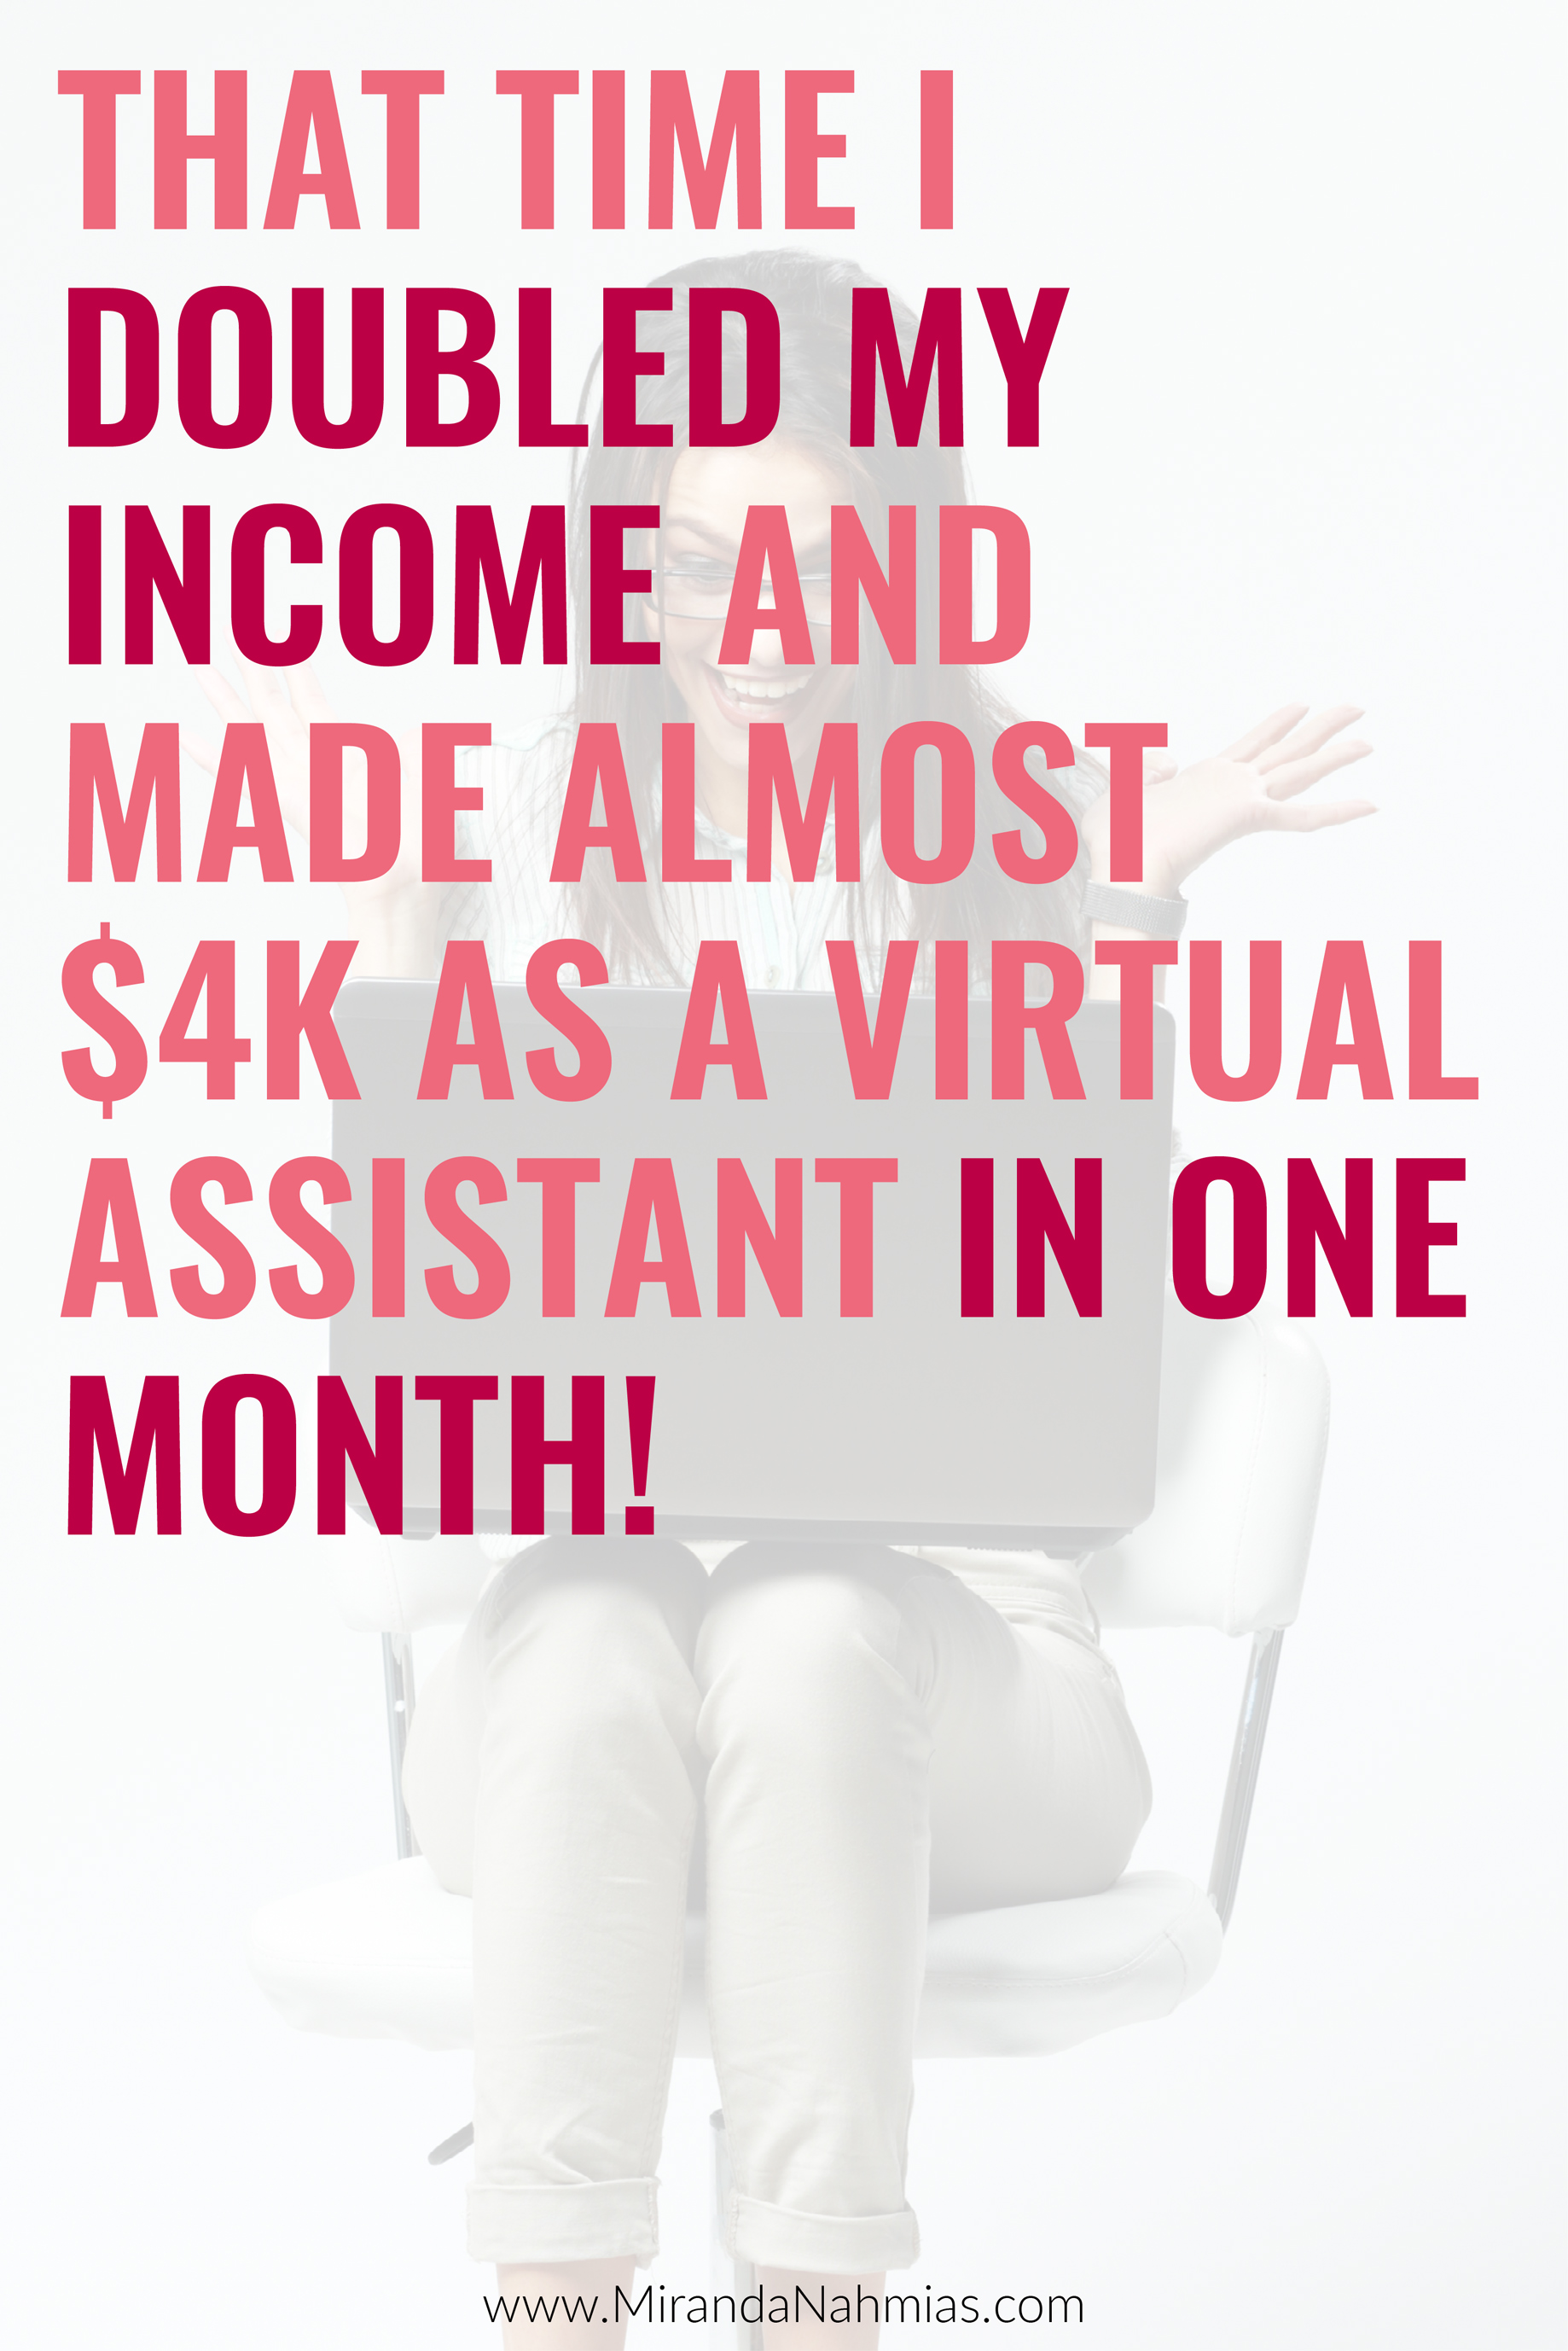 That Time I Doubled My Income and Made Almost $4k as a Virtual Assistant (in one month!) // Miranda Nahmias